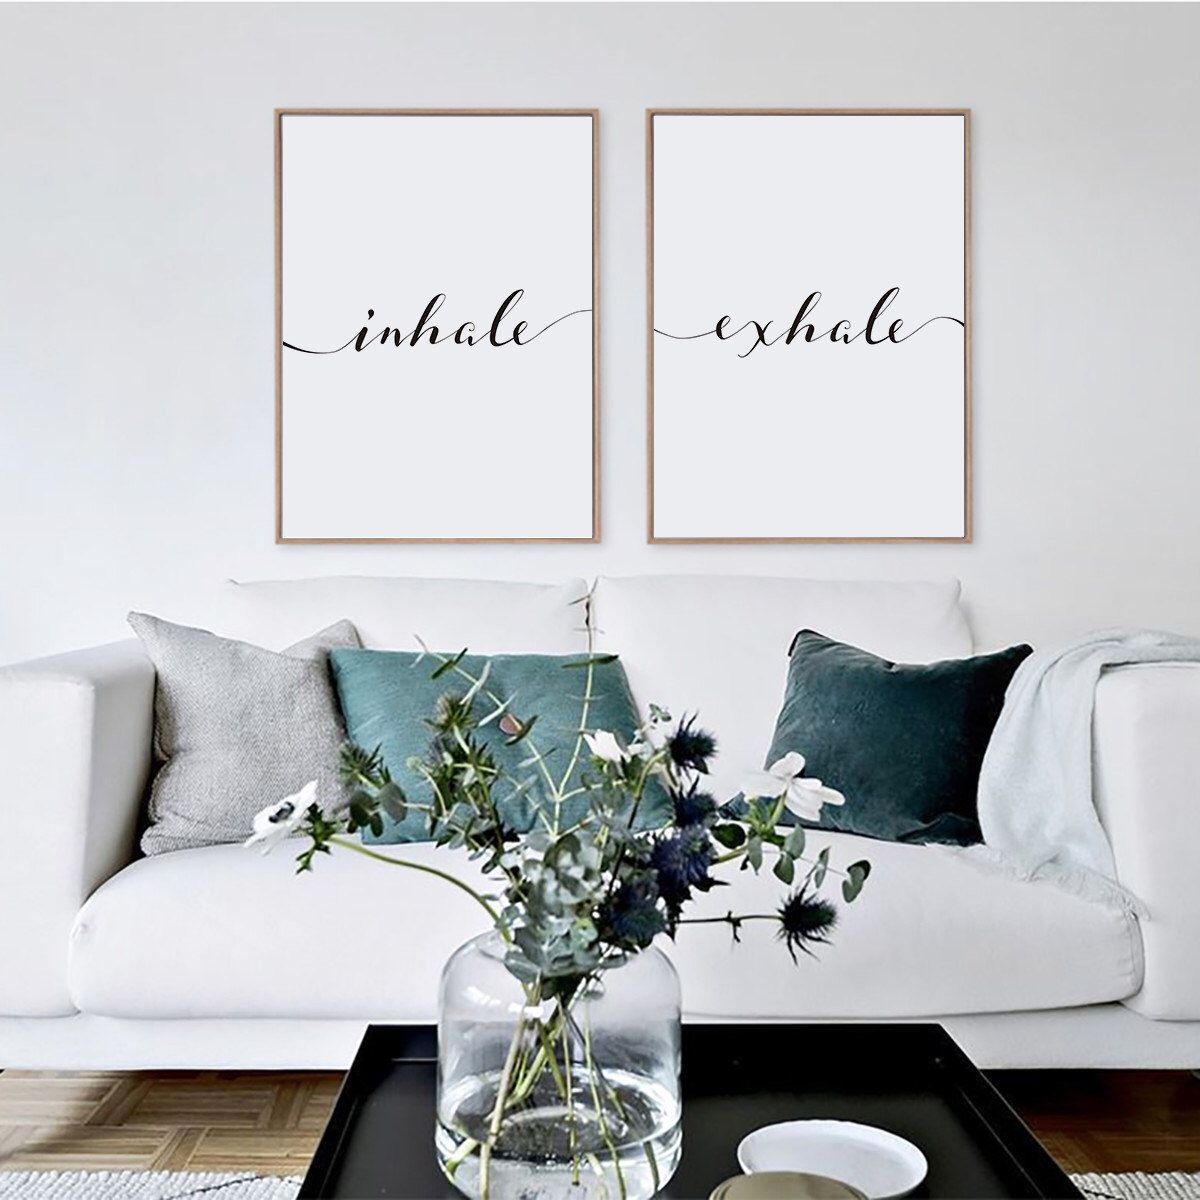 Minimalist Motto Isu201d Less Is Moreu201d Meaning That Less Furnishings In Your  Living Room Will Permit More Energy In The Location.